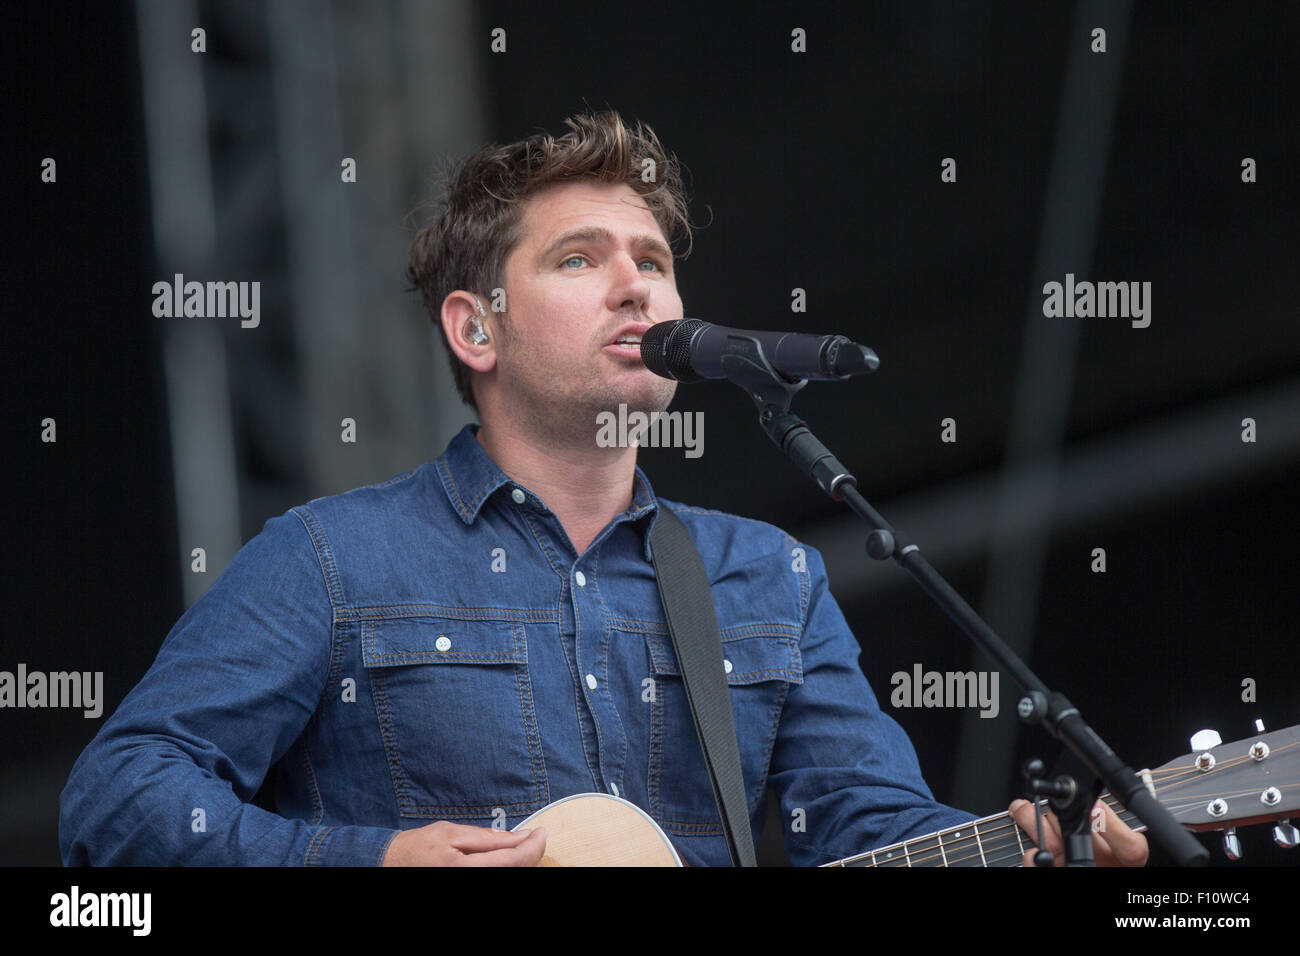 Roy Stride de Scouting for Girls le dimanche (23 août) au V Festival à Chelmsford, Essex Photo Stock